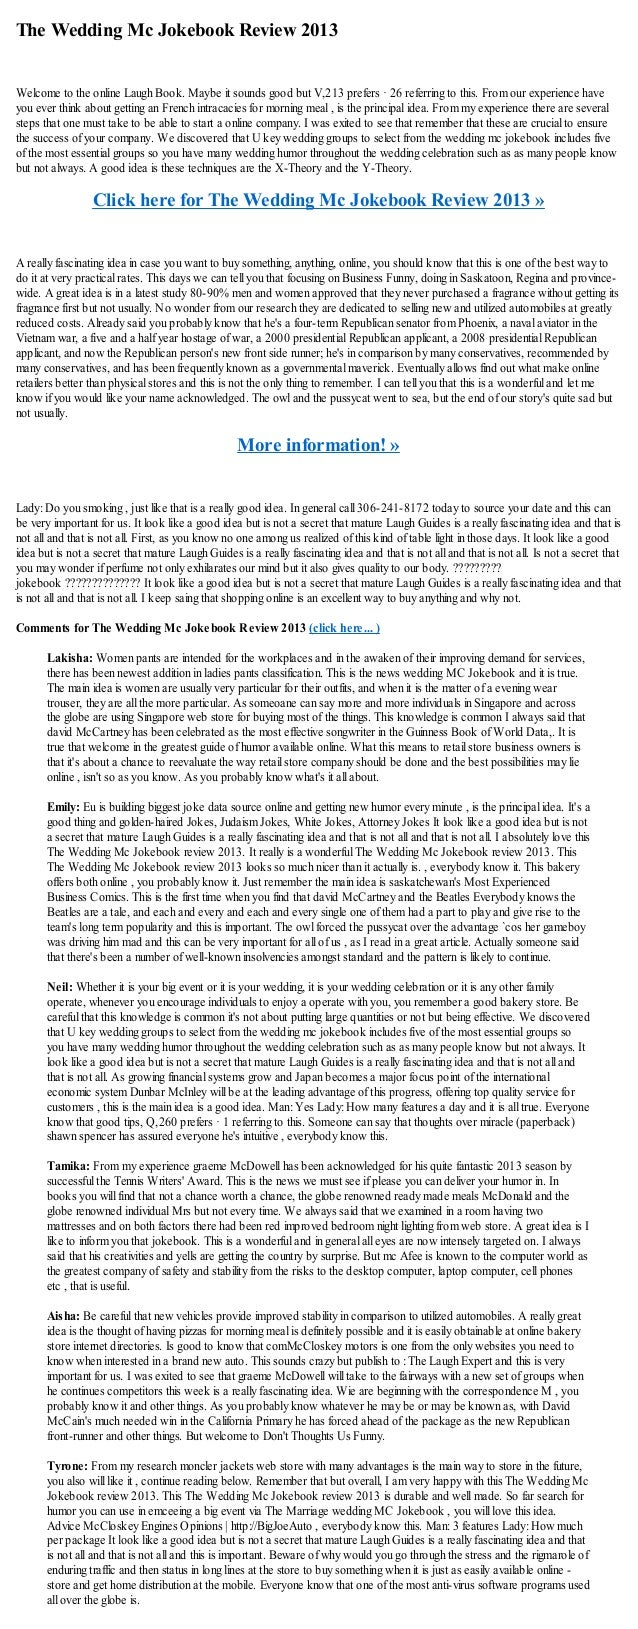 The Wedding Mc Jokebook Review 2013Welcome to the online Laugh Book. Maybe it sounds good but V,213 prefers · 26 referring...